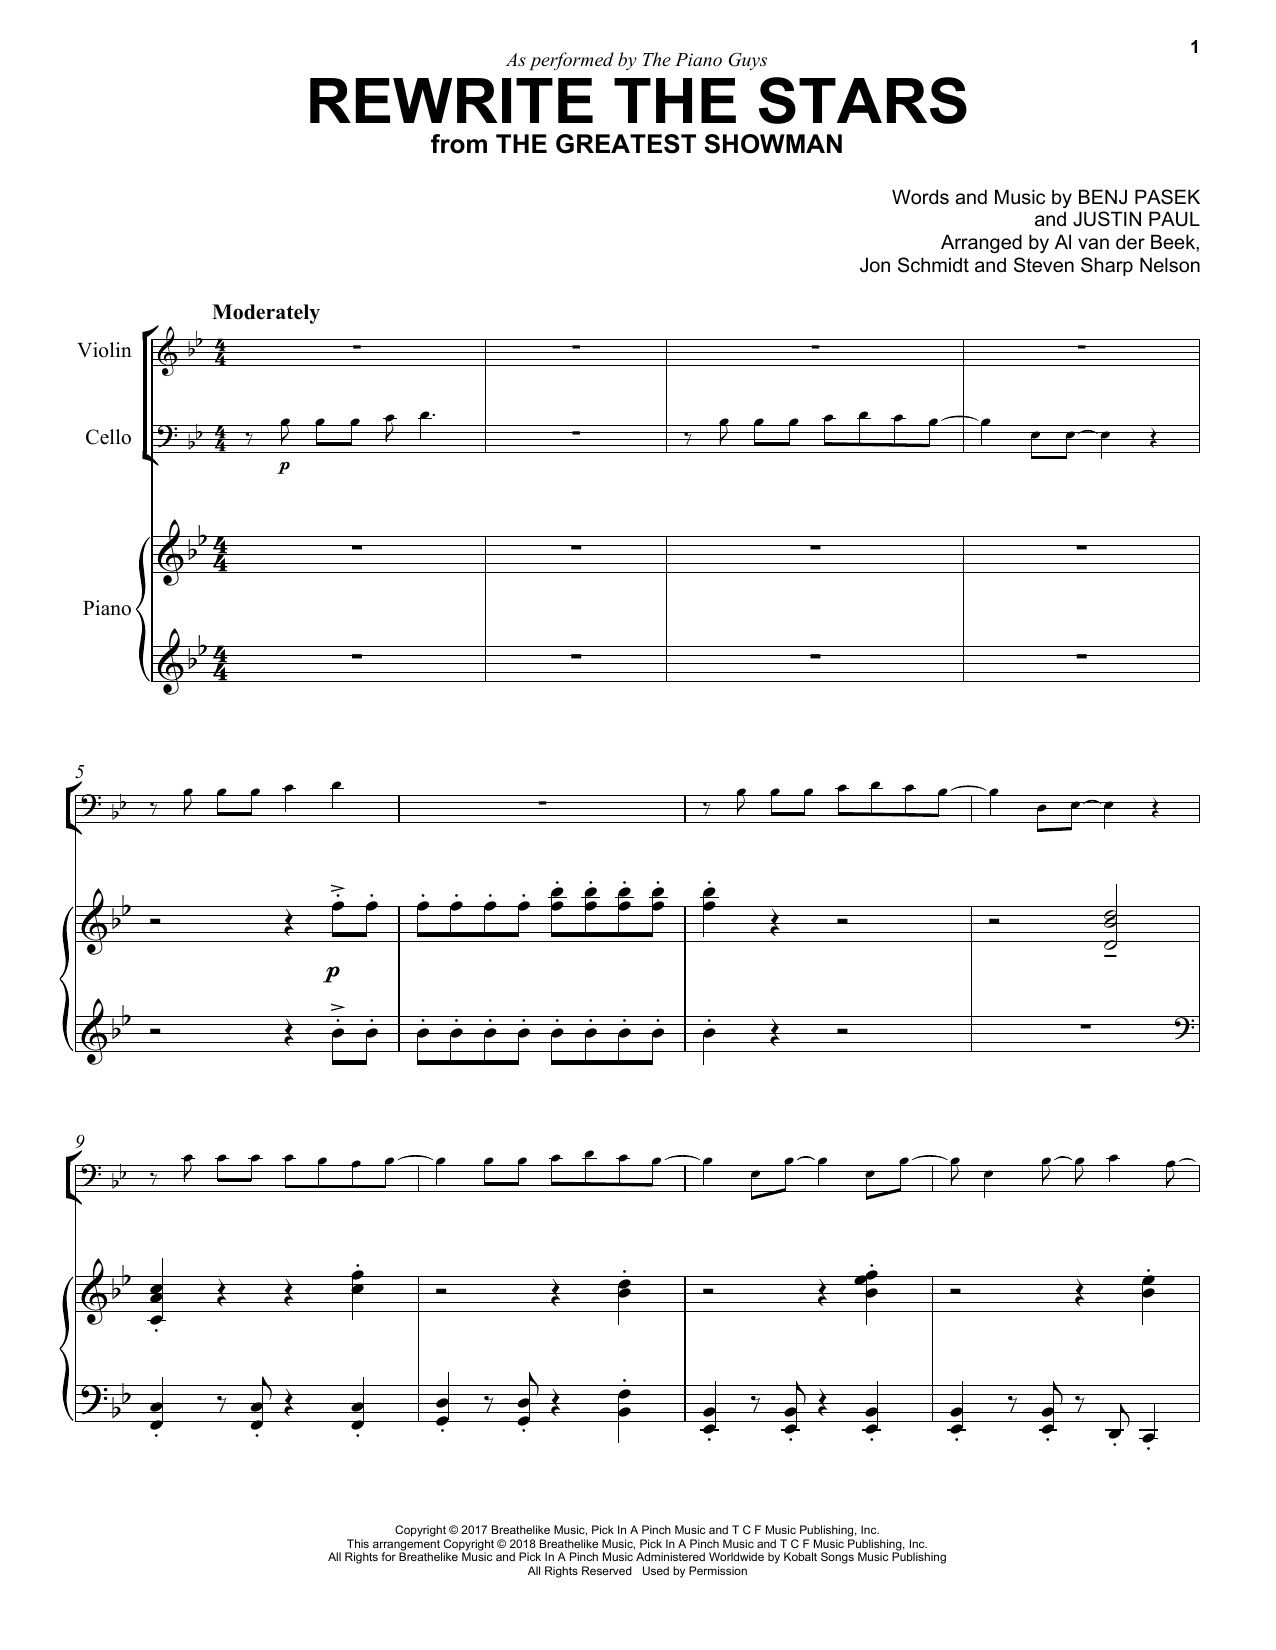 Download The Piano Guys 'Rewrite The Stars' Digital Sheet Music Notes & Chords and start playing in minutes